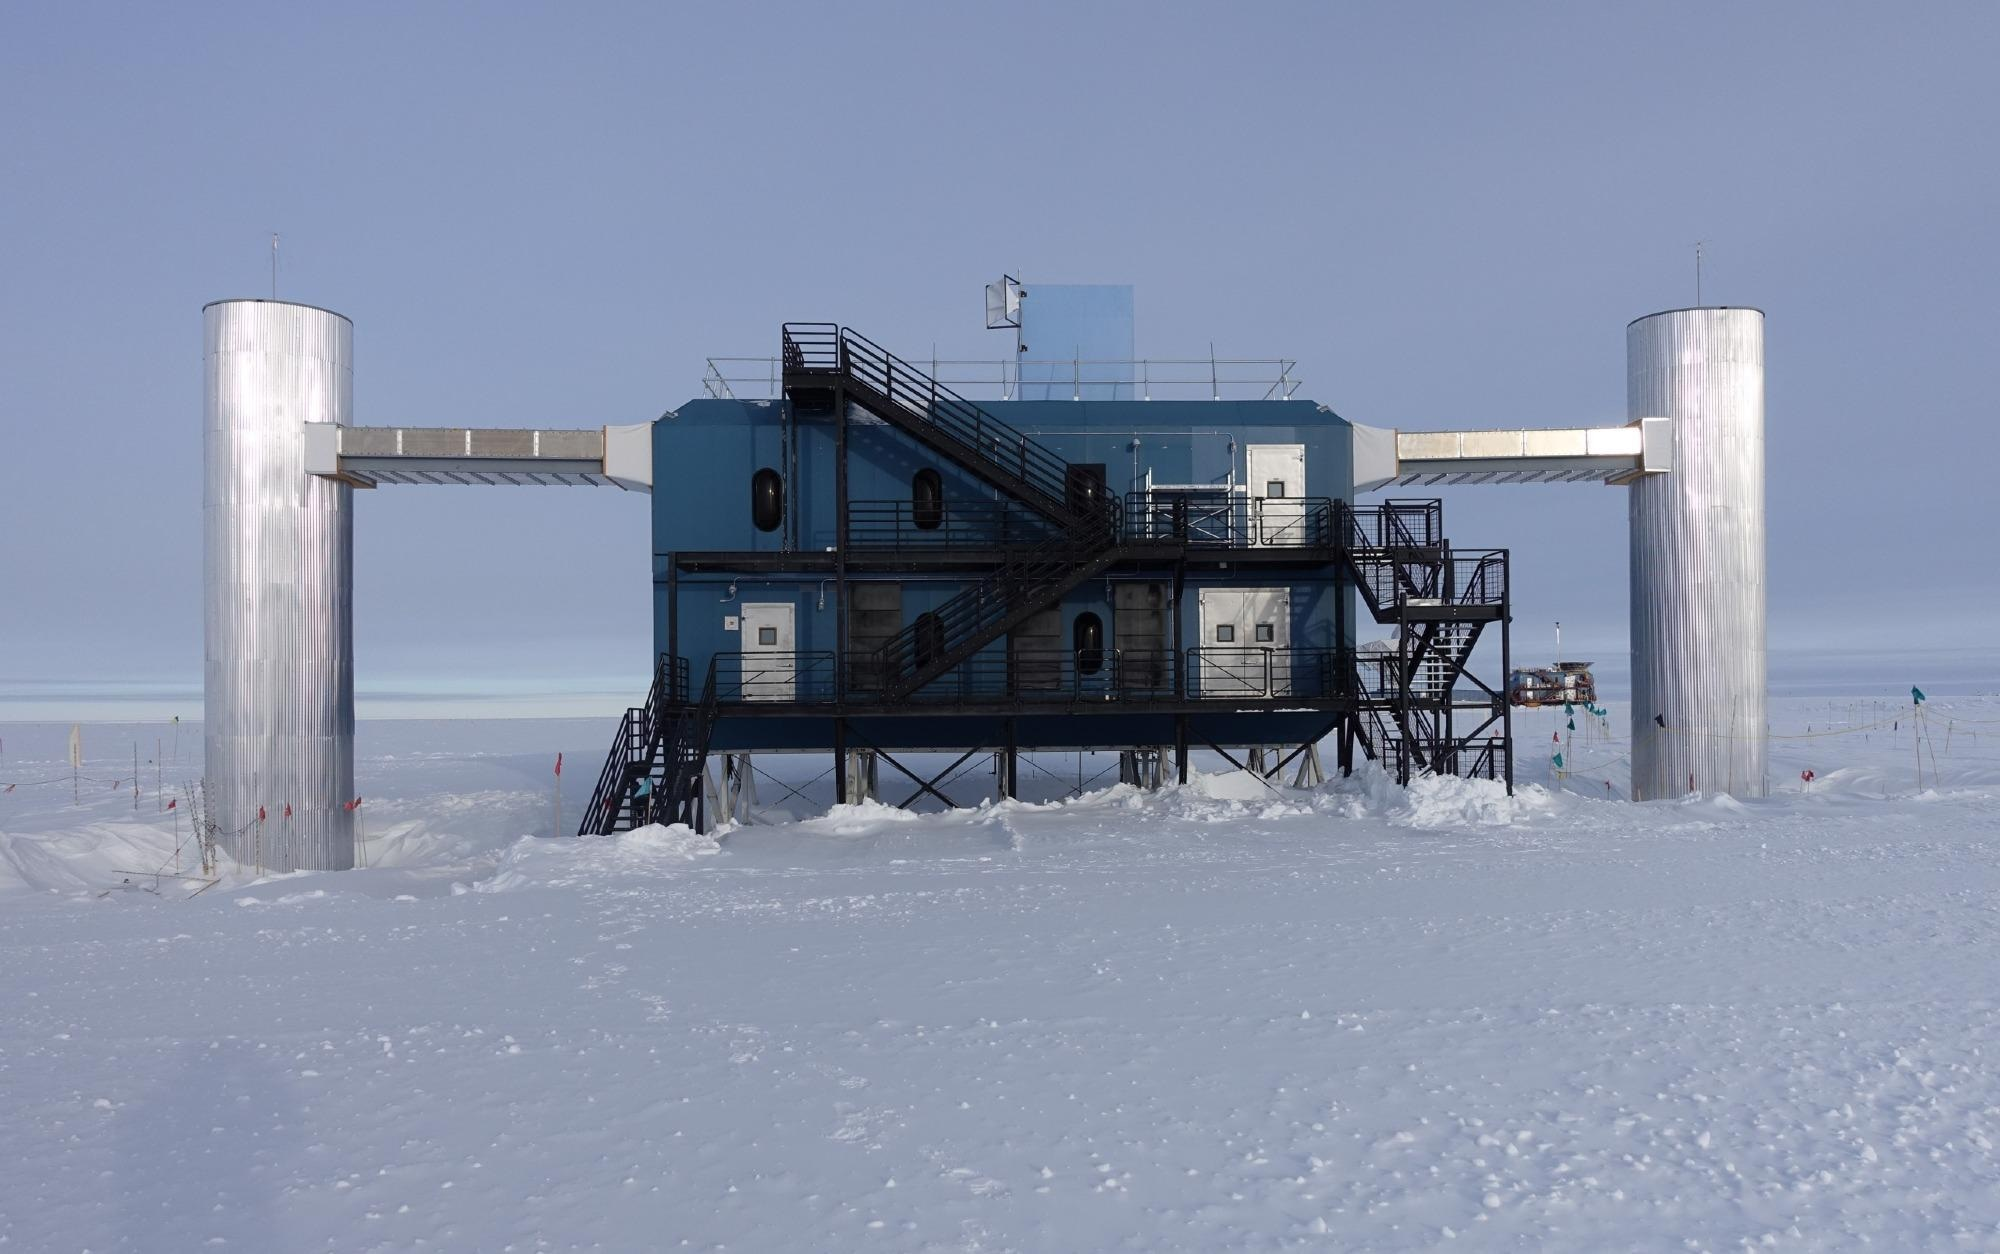 The IceCube Laboratory at the South Pole. This building holds the computer servers that collect data from IceCube's sensors under the ice.